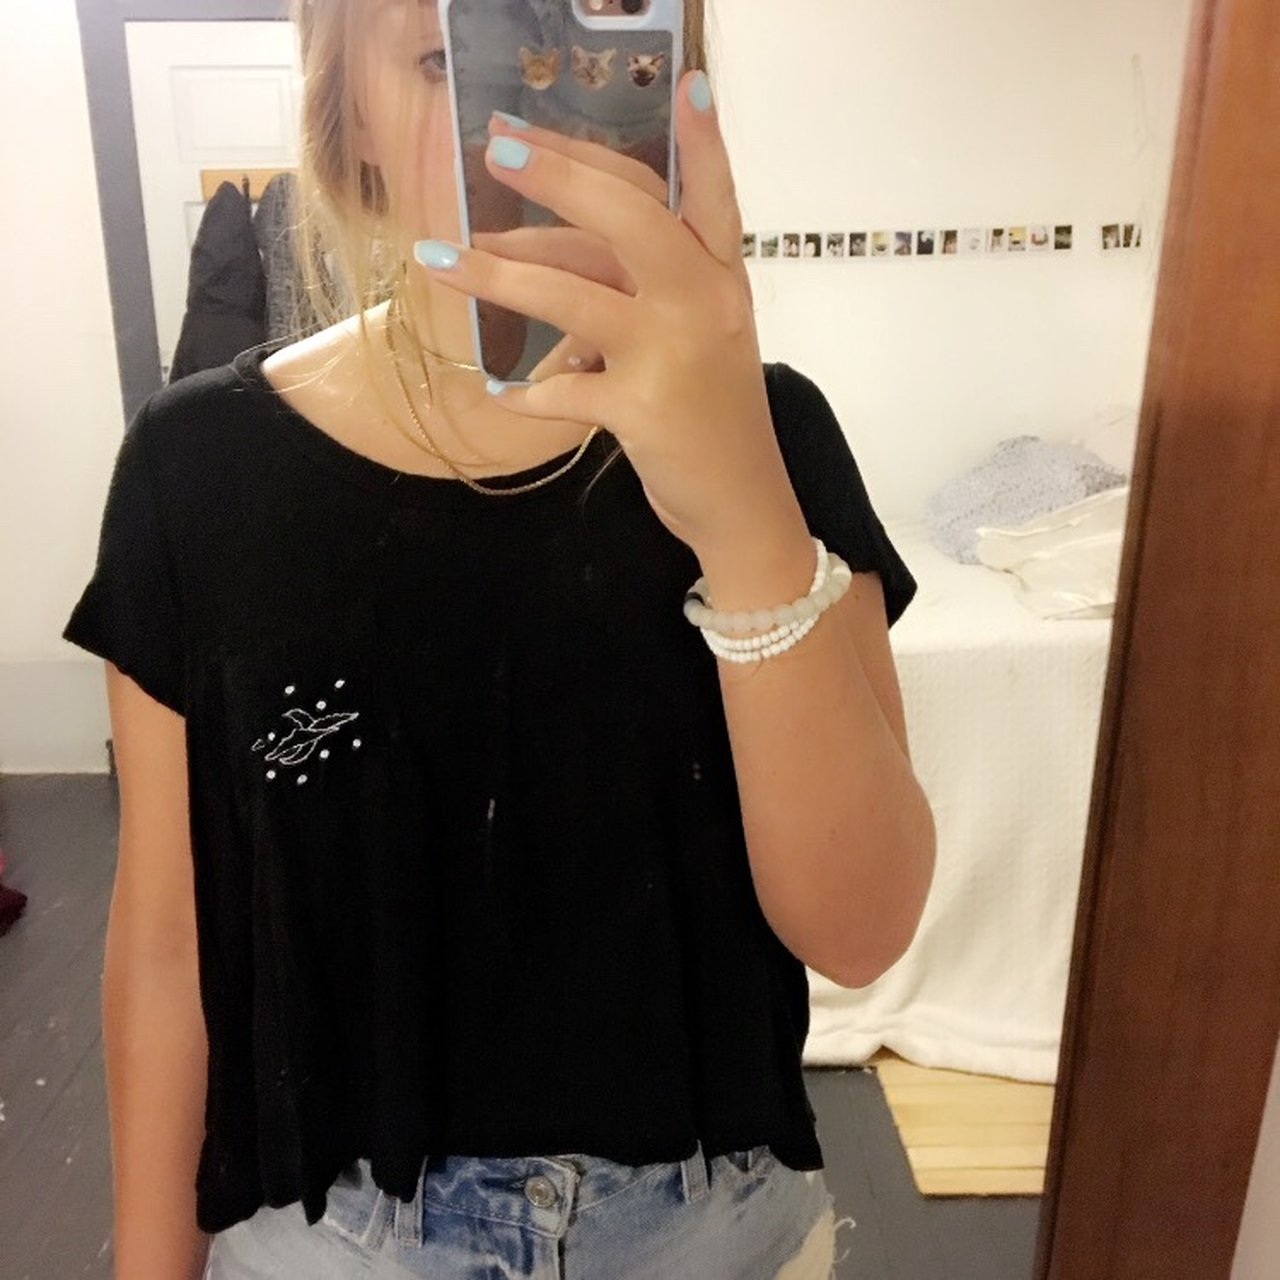 14c04560f8 PacSun LA hearts black cropped t shirt Pocket with moon and - Depop